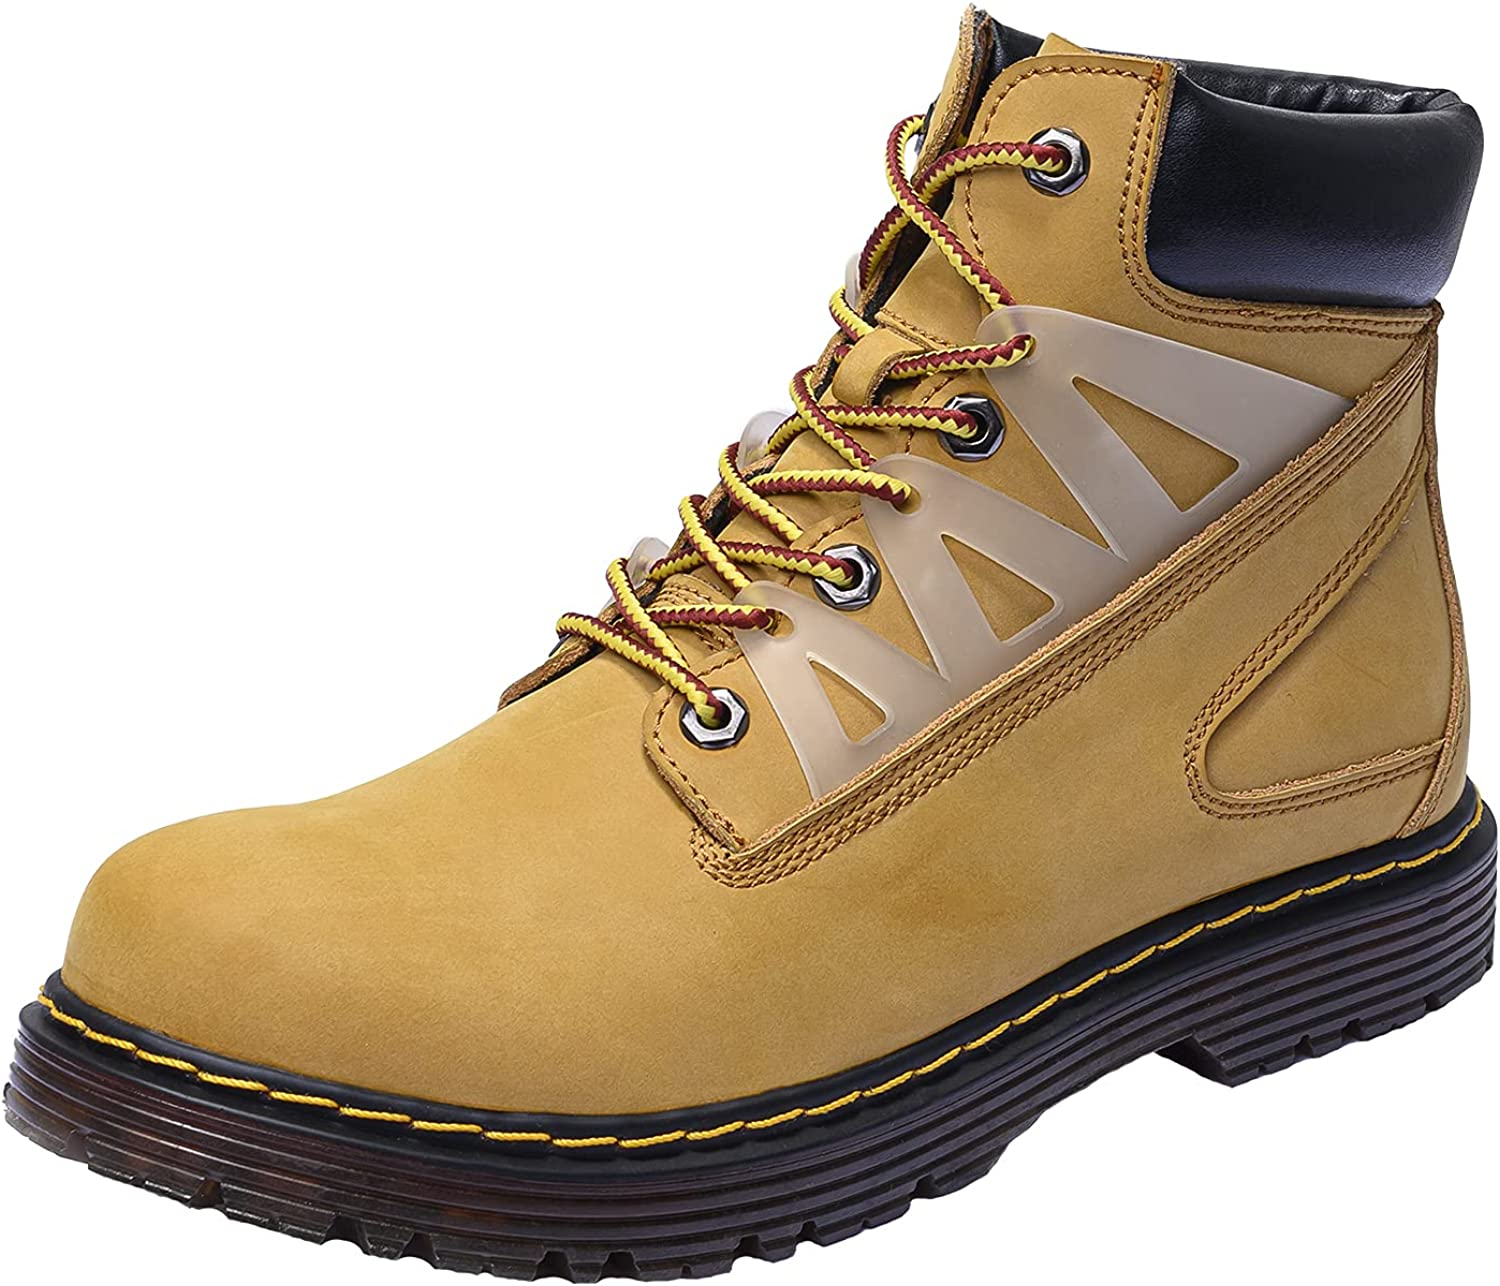 Men's Max 59% OFF Leather Fashion Boot Casual Outdoor Department store Camping Boots T Hiking